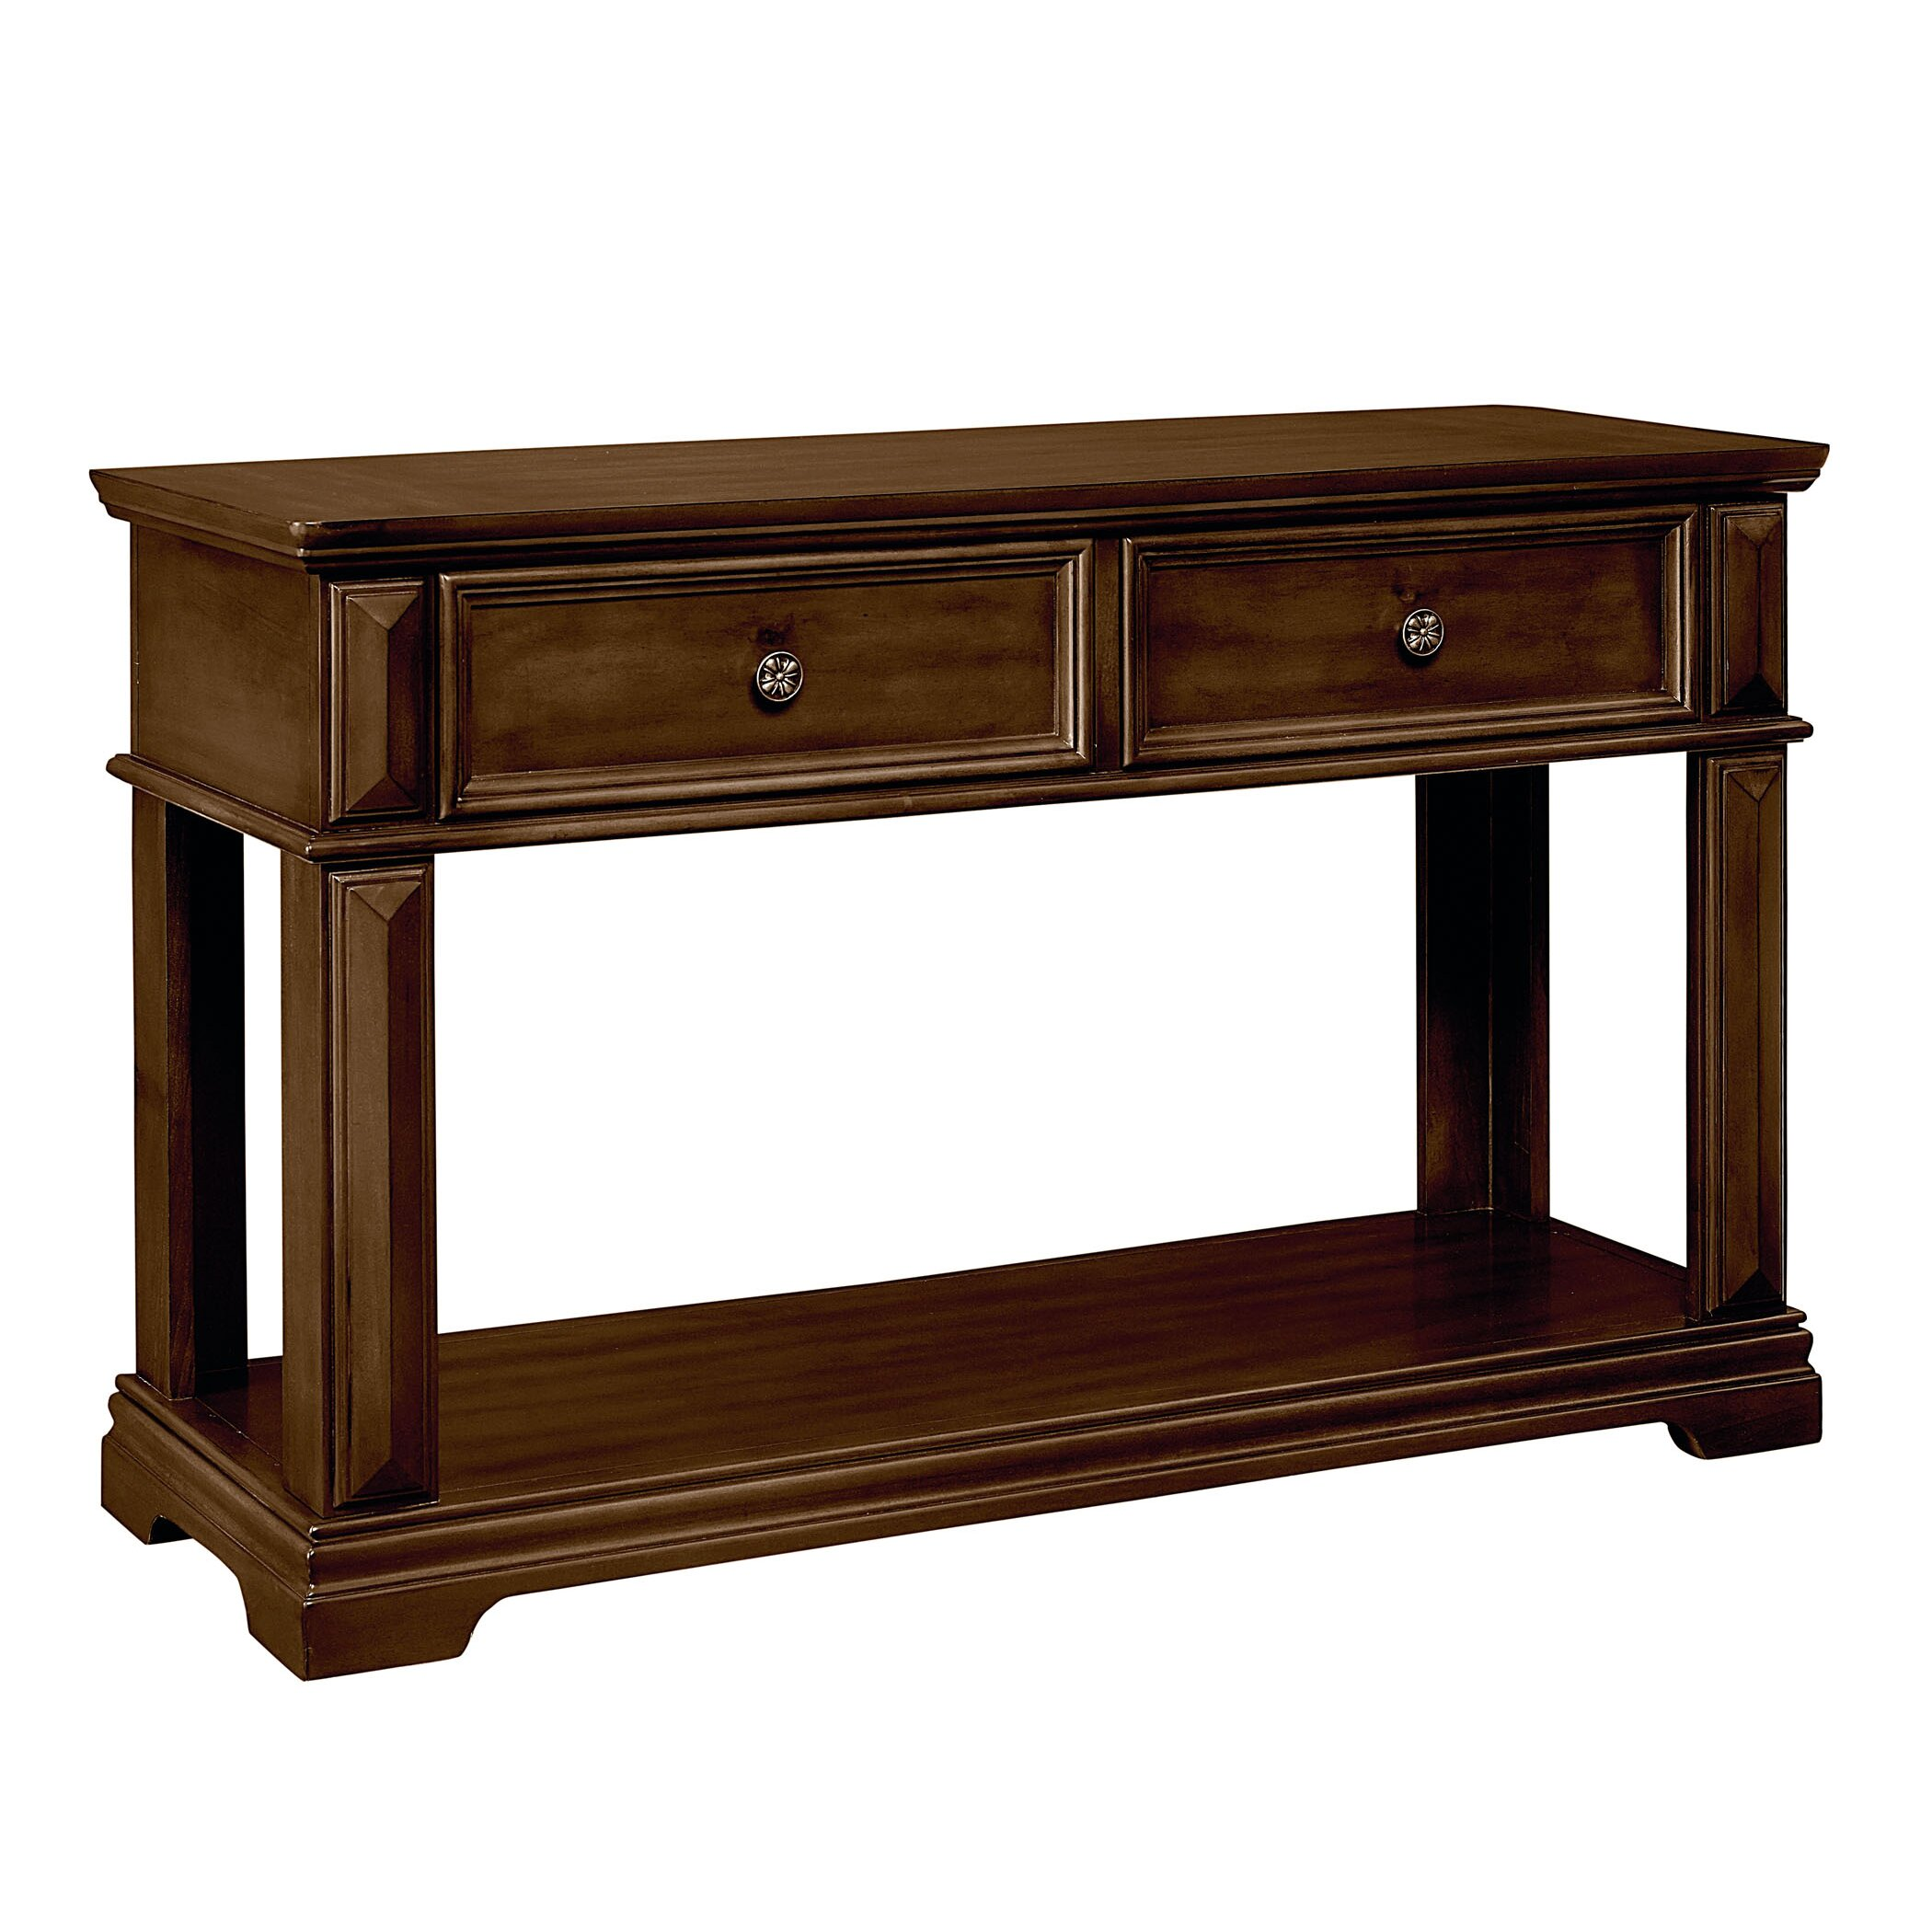 standard furniture charleston console table wayfair. Black Bedroom Furniture Sets. Home Design Ideas